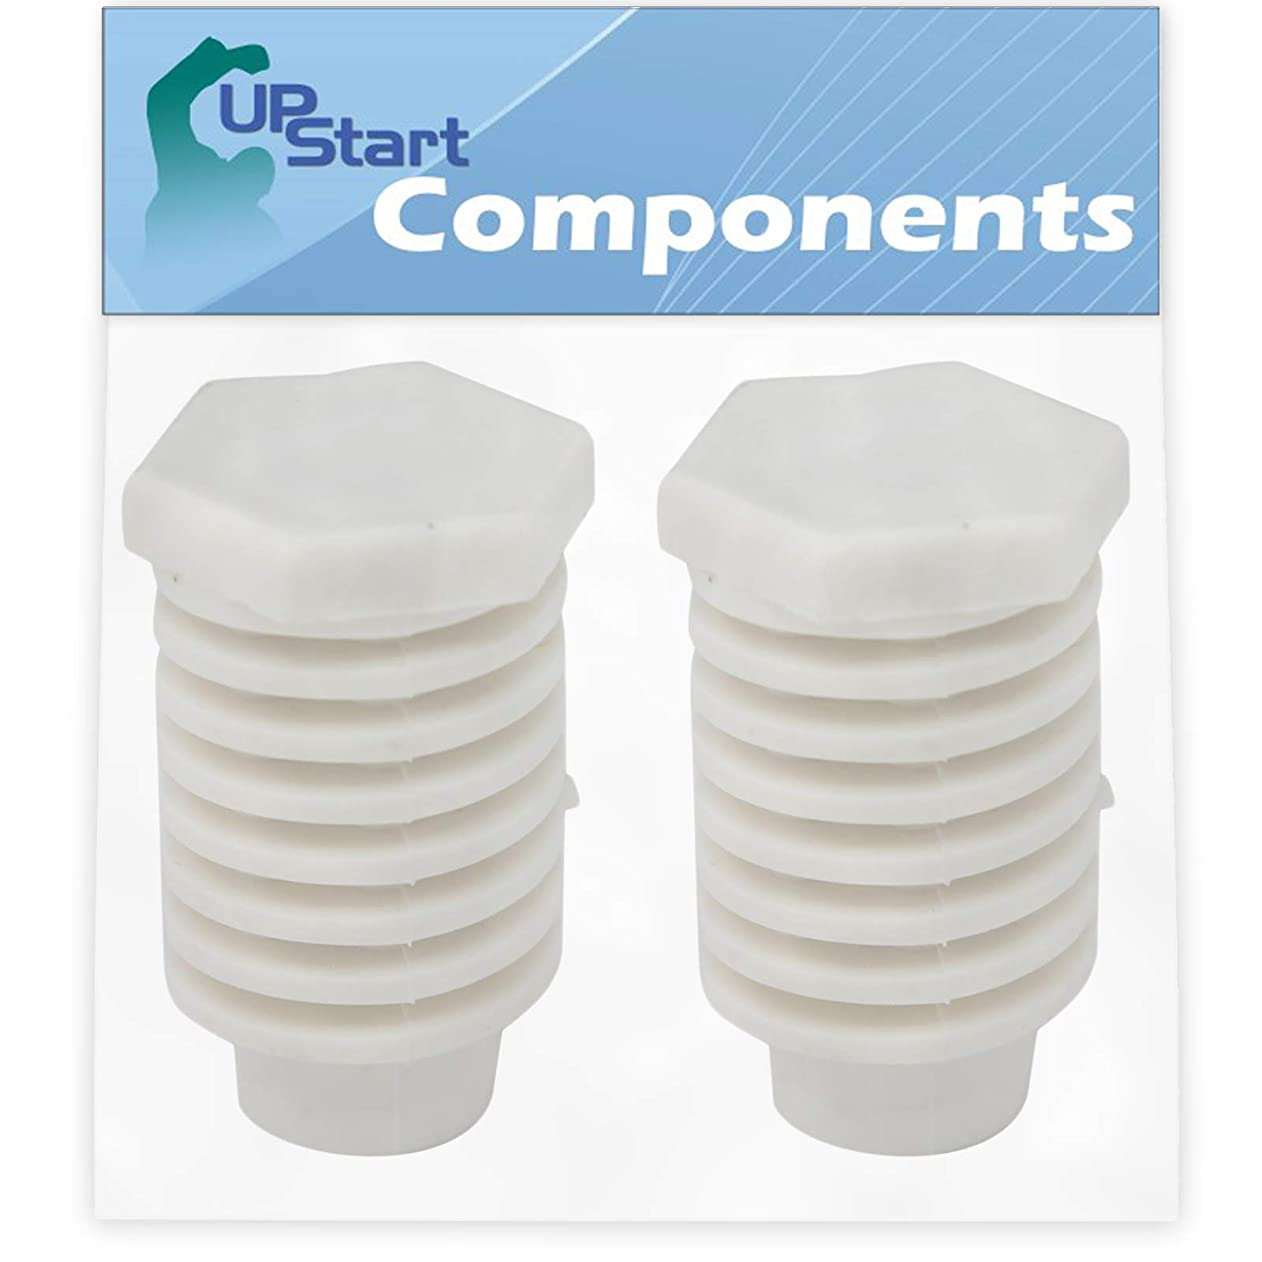 2-Pack 49621 Leveling Foot Replacement for Whirlpool LET6634DZ1 Dryer - Compatible with 49621 Dryer Leveling Leg Foot - UpStart Components Brand ltspqrrkaoz06581